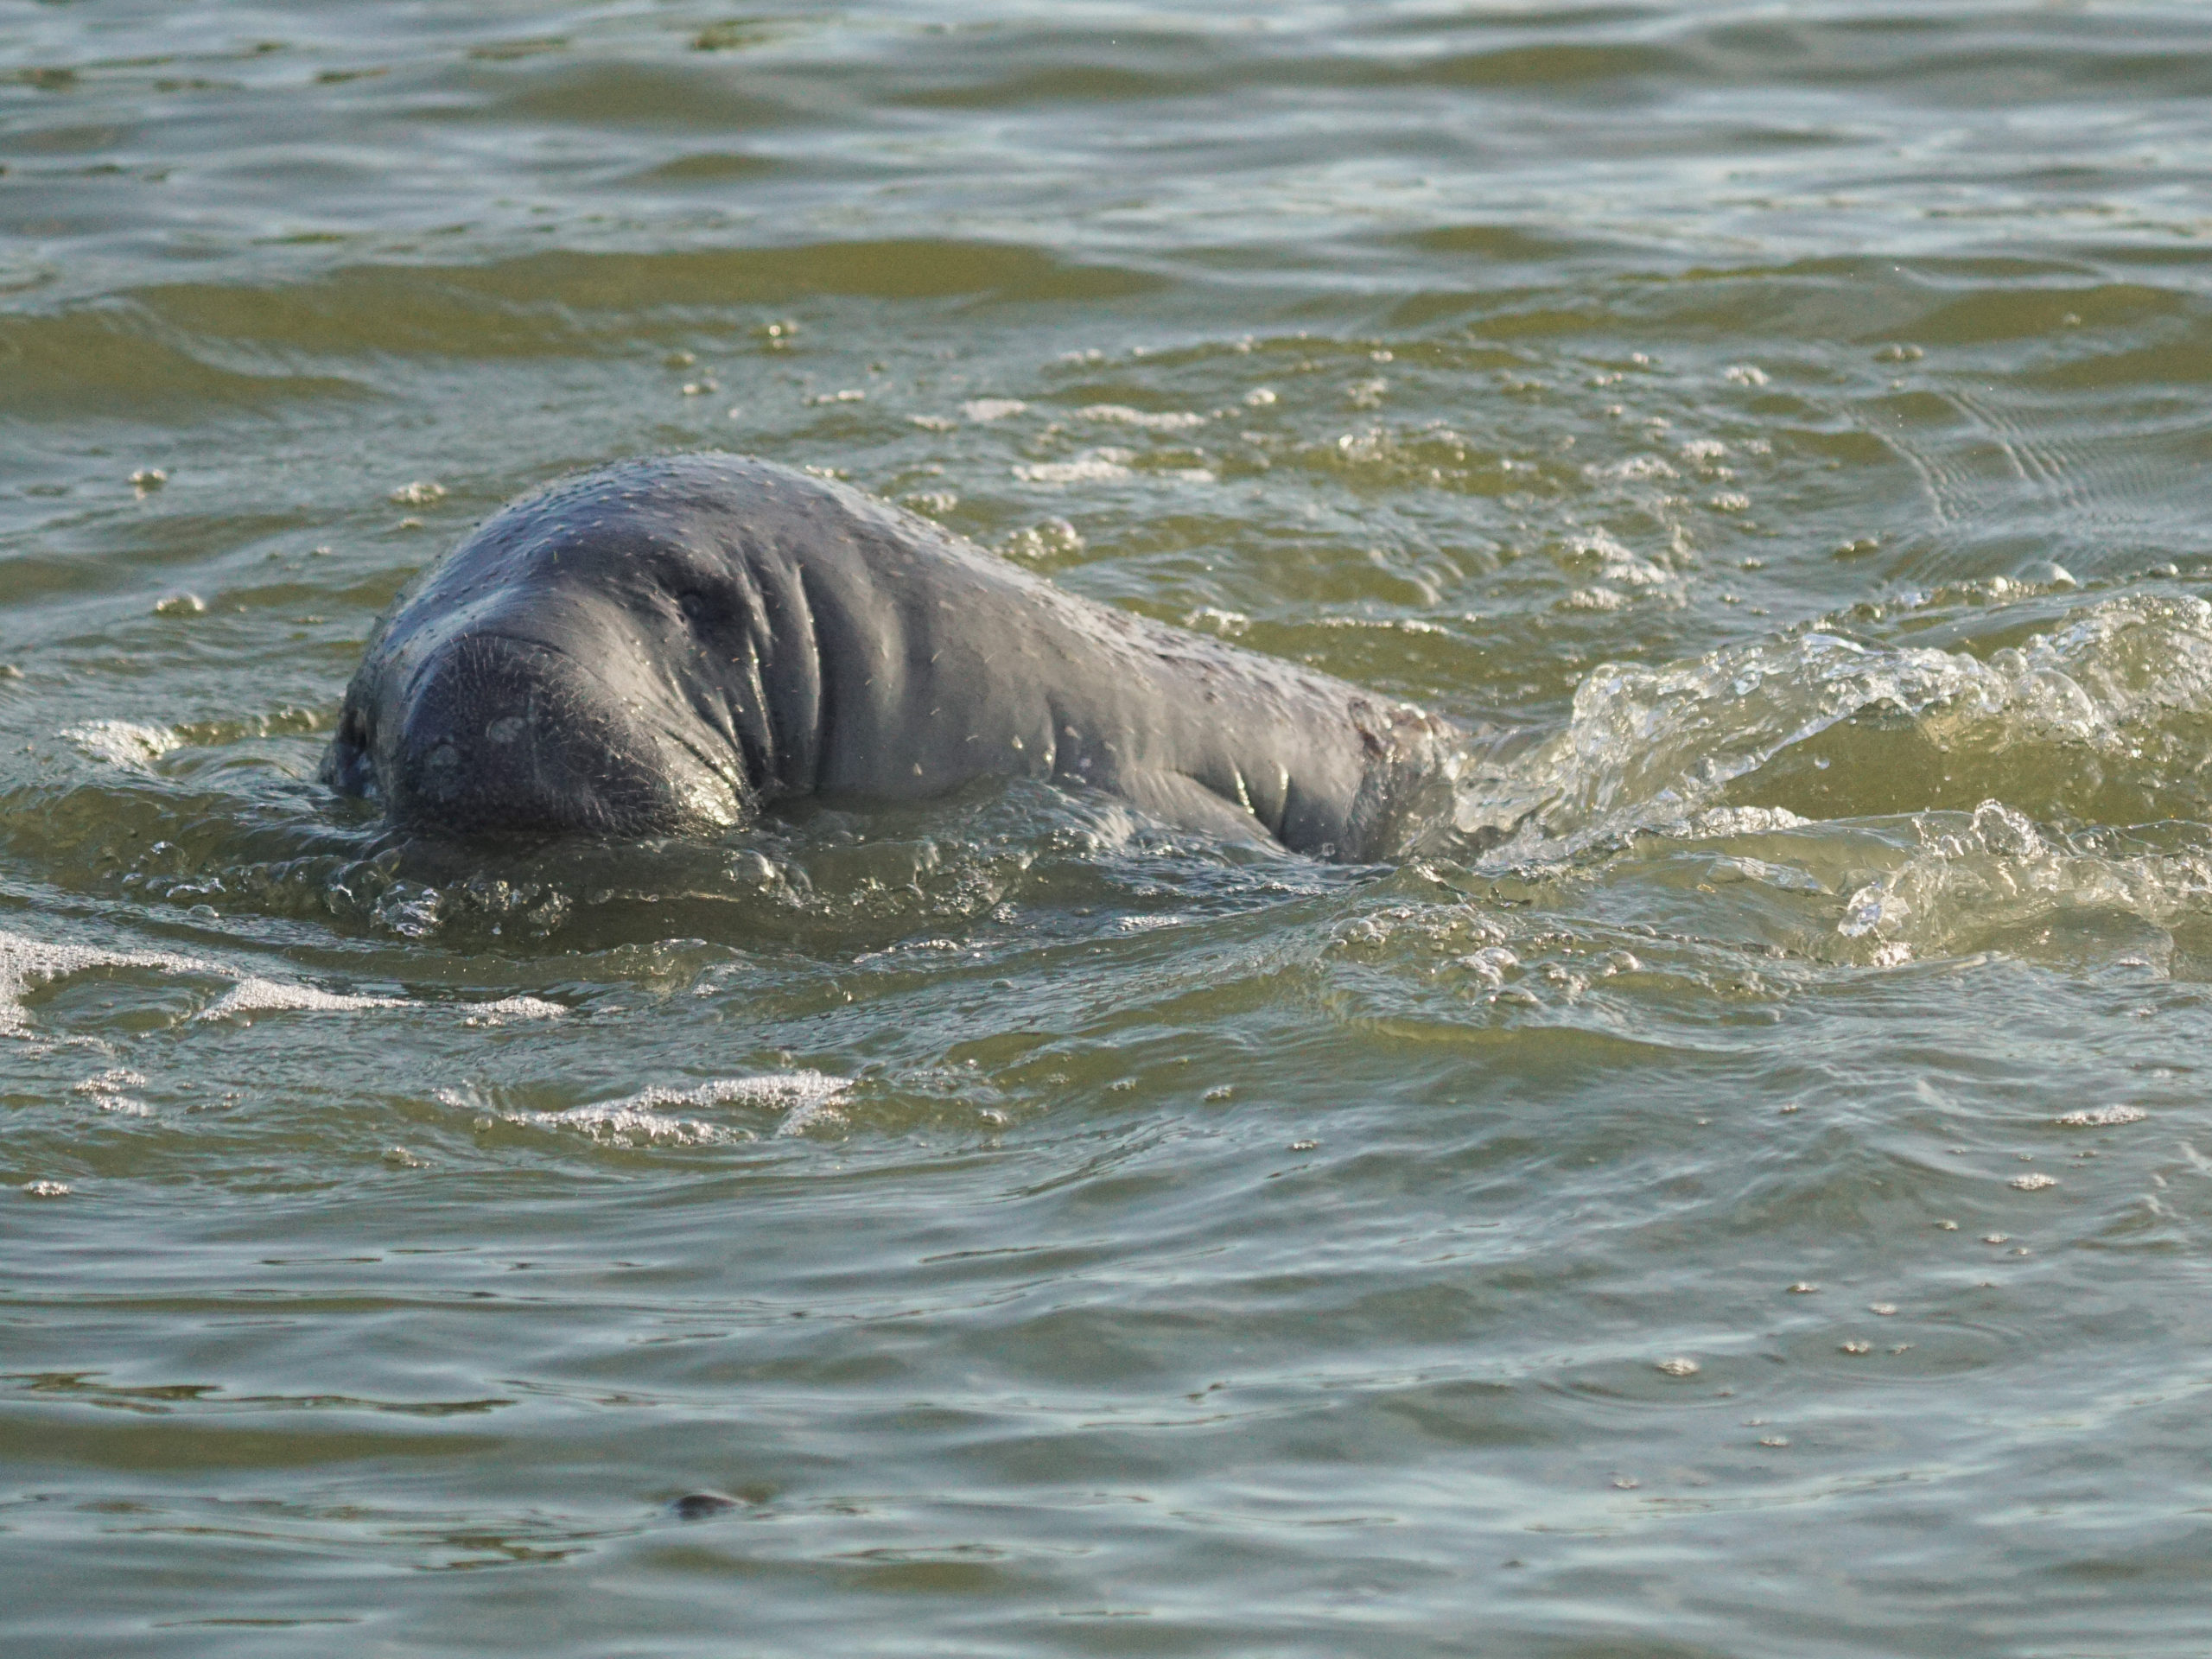 Manatee surfacing in the Everglades